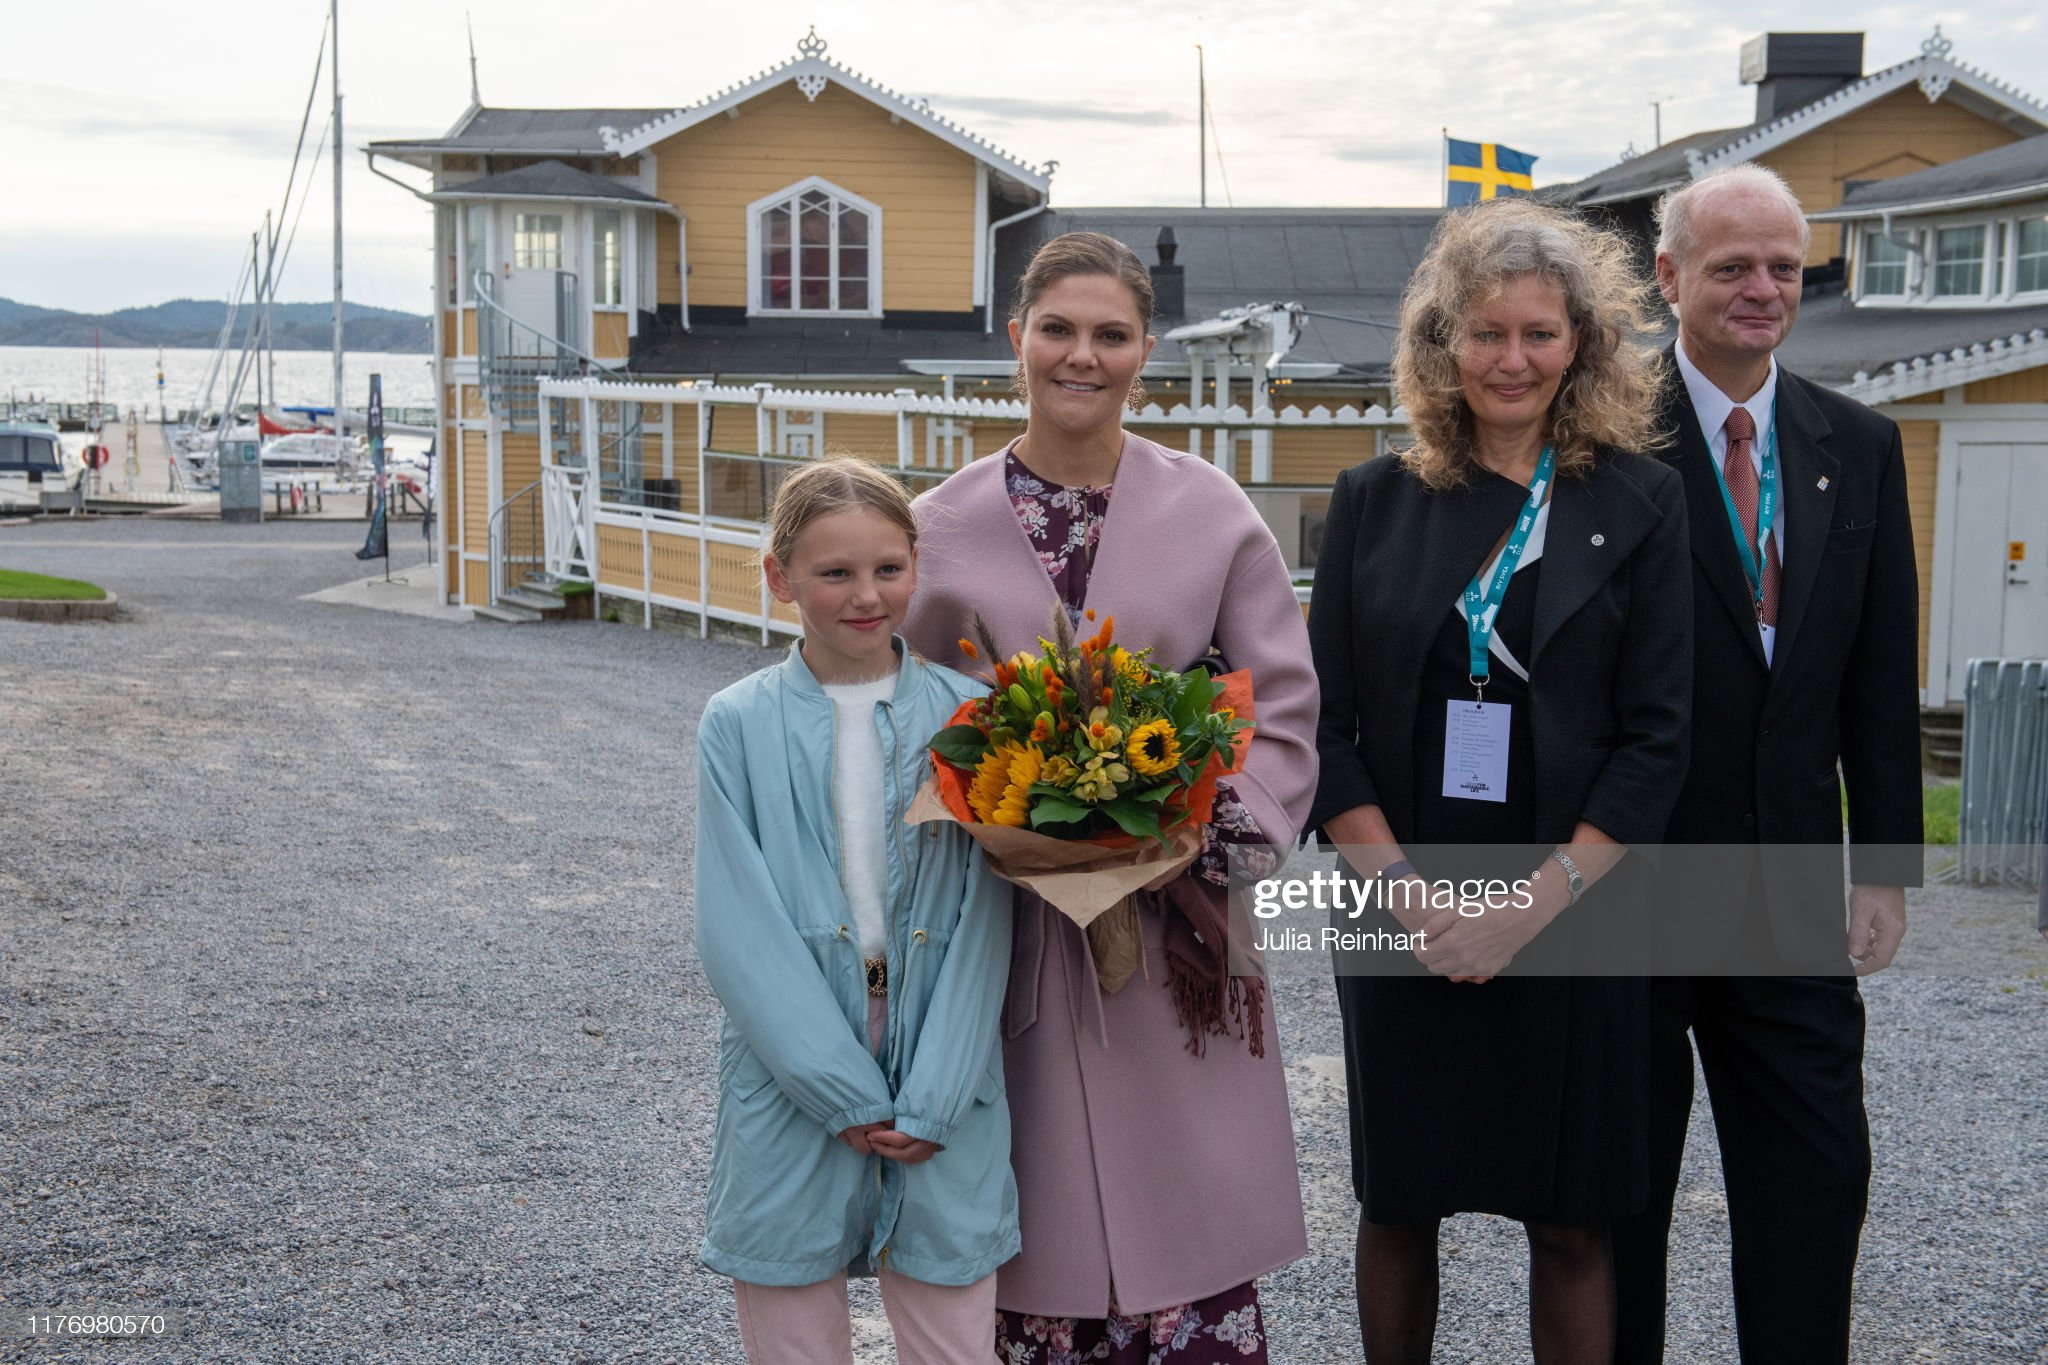 crown-princess-victoria-greets-local-dignitaries-as-she-arrives-for-picture-id1176980570